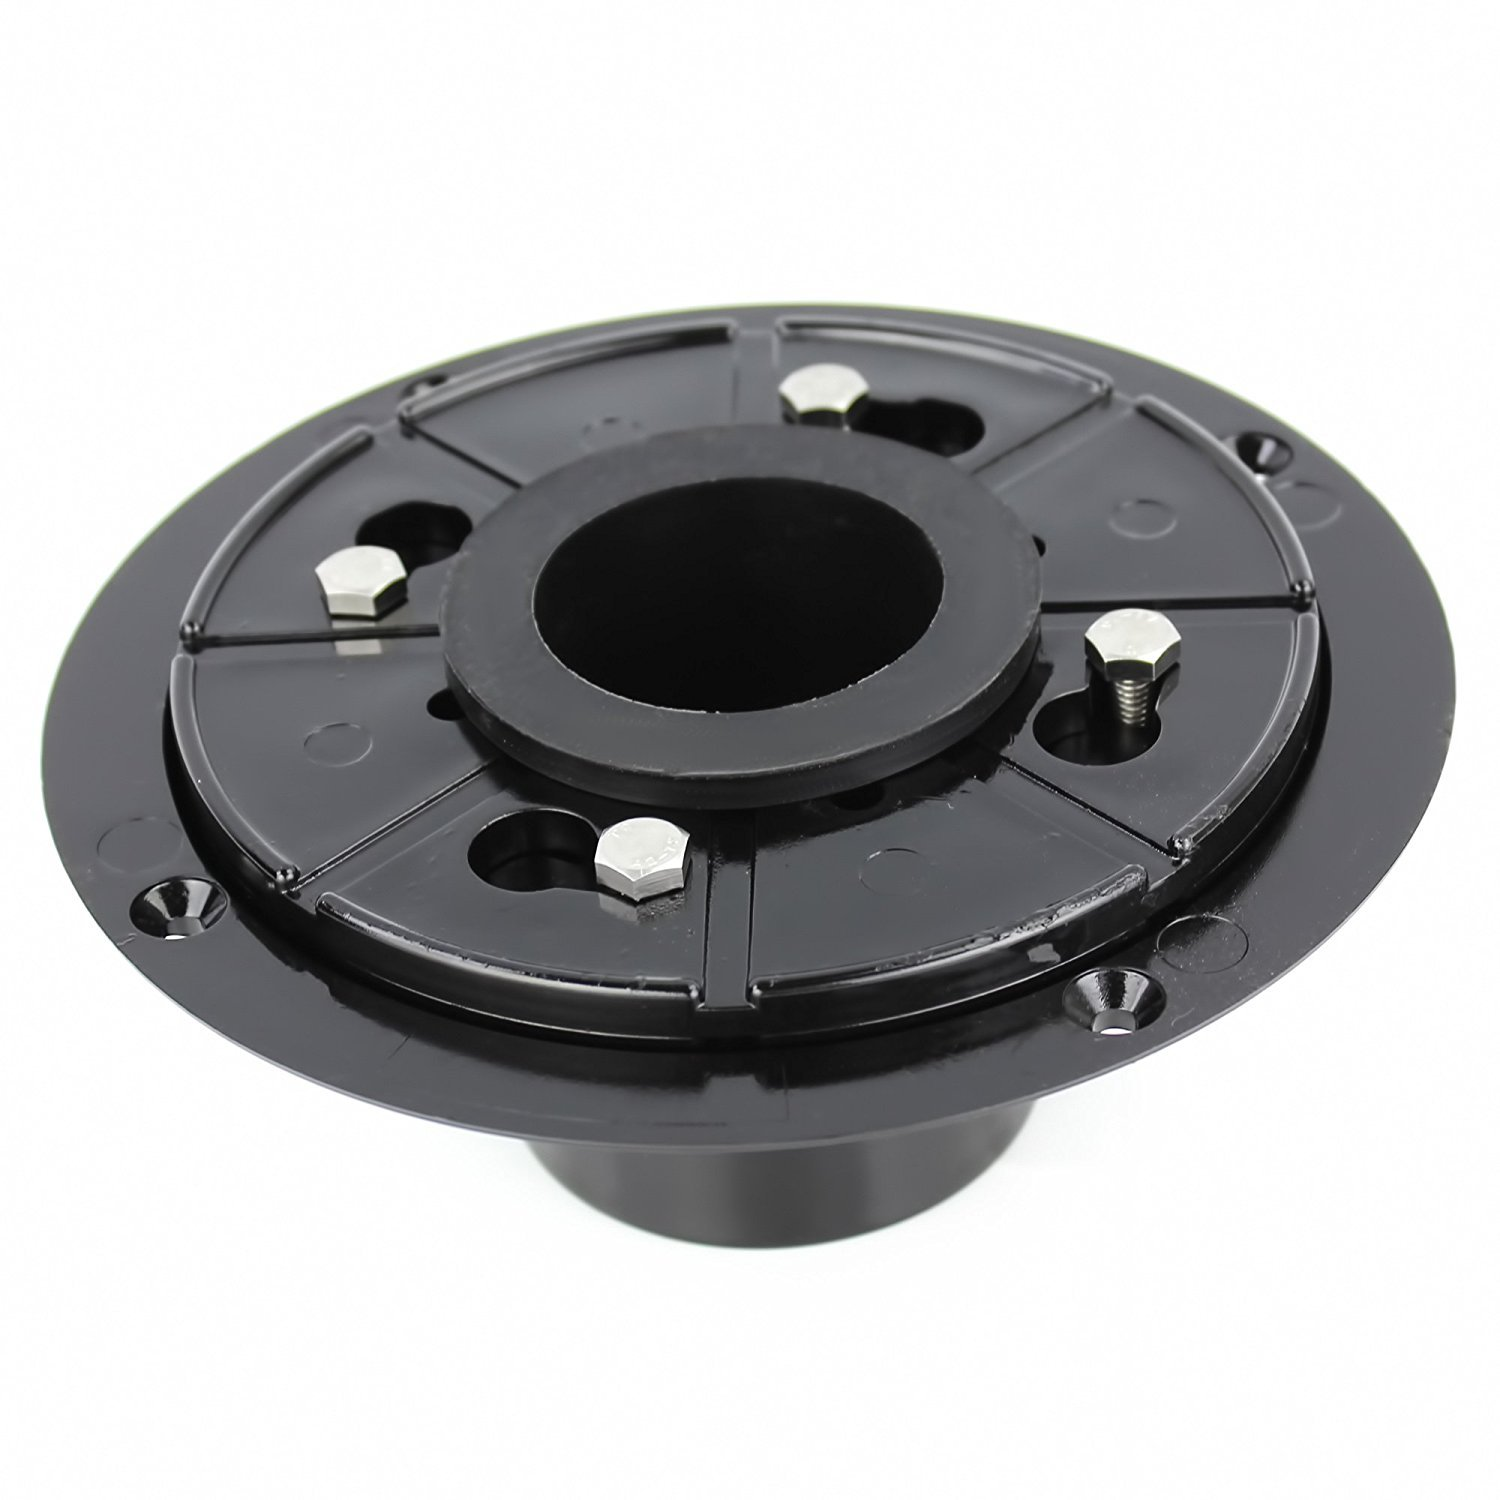 Kingwork Shower Drain Base with Rubber Gasket and Wrench, 2 Inch, No Hub Design for Linear Shower Drains - Black